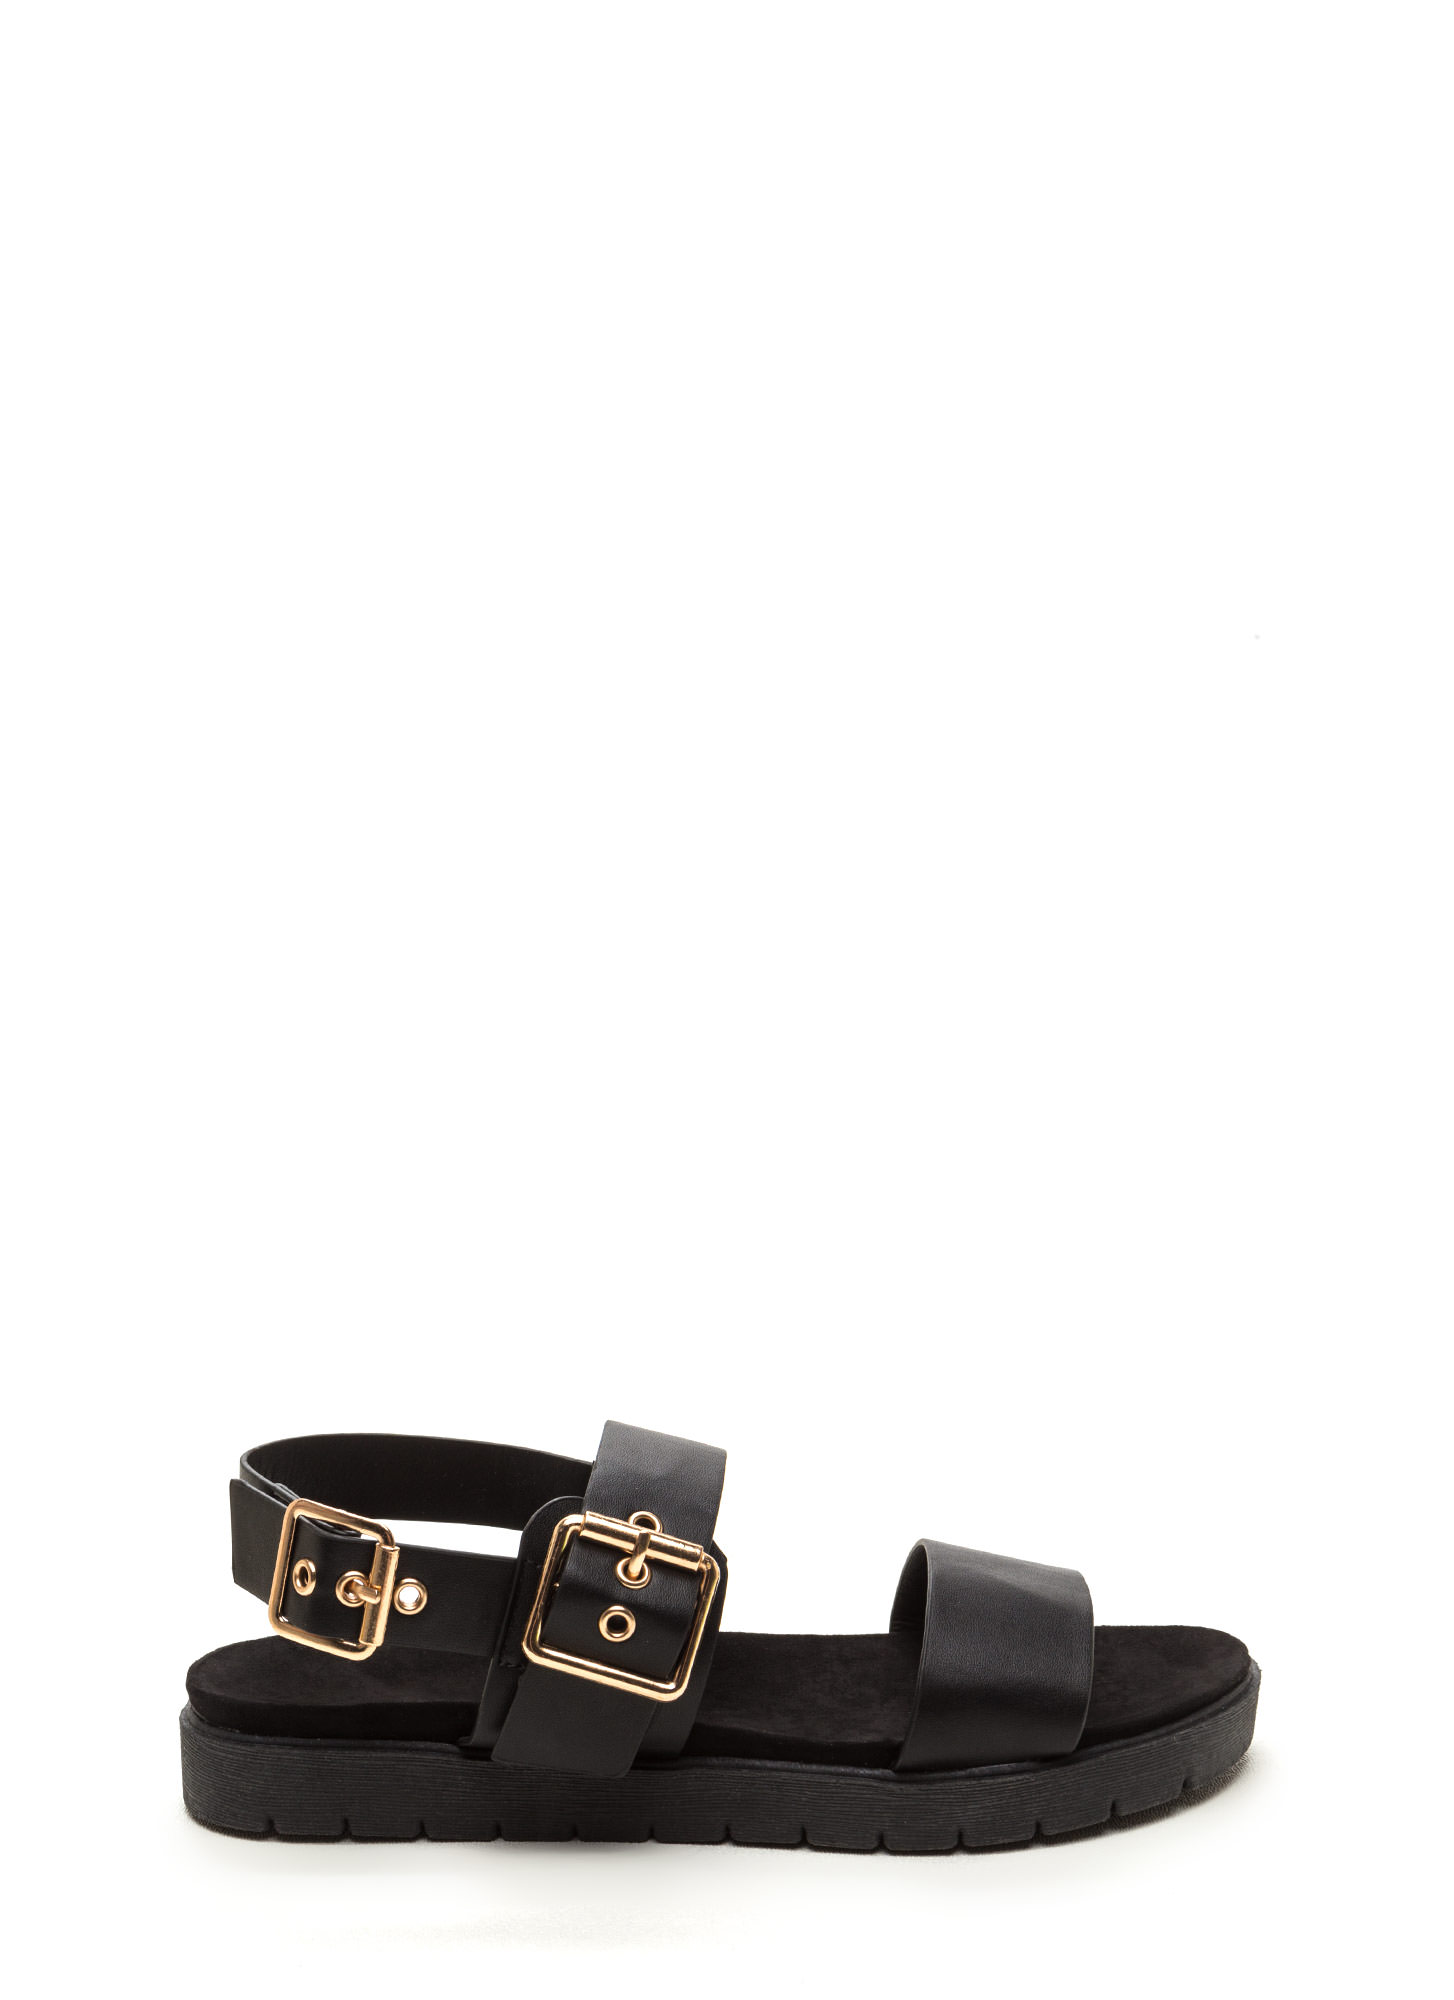 All Day Event Strappy Flatform Sandals BLACK